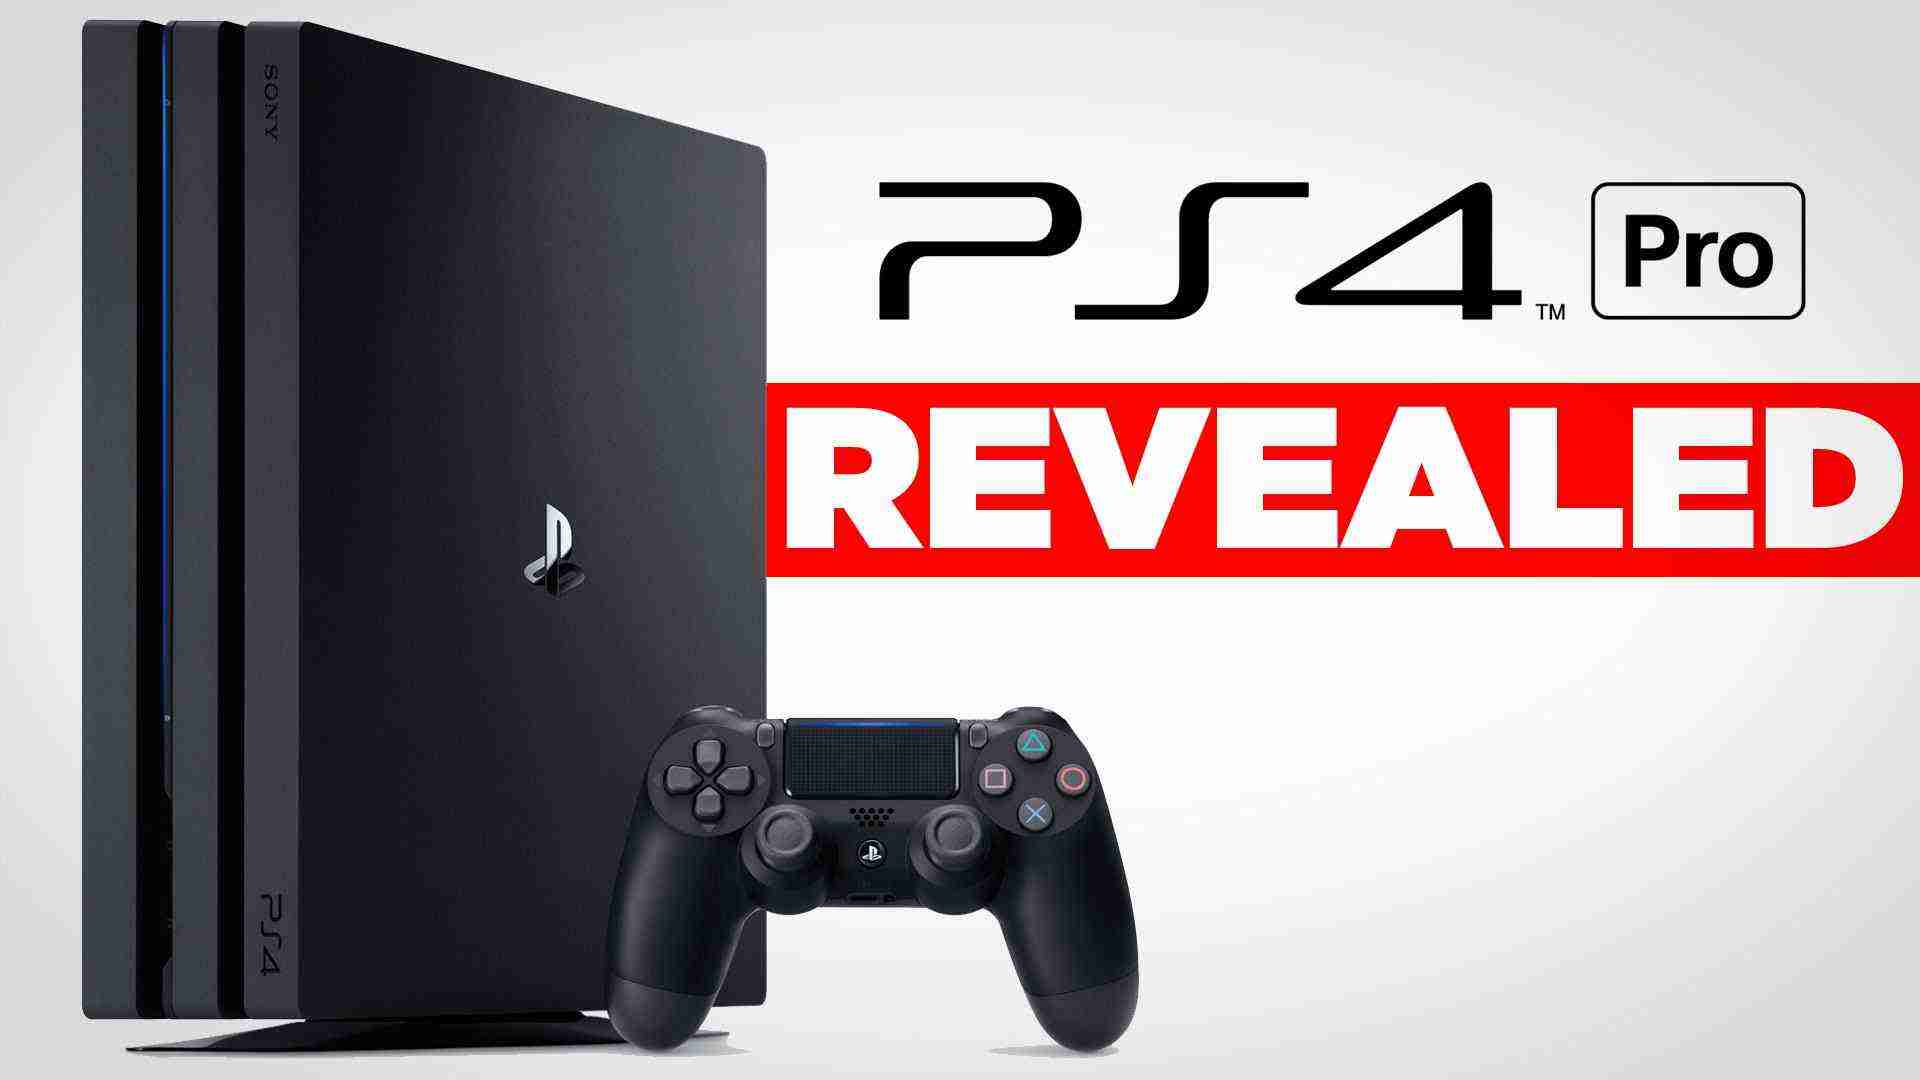 Playstation 4 Pro Release Date Revealed – Inside Gaming Daily